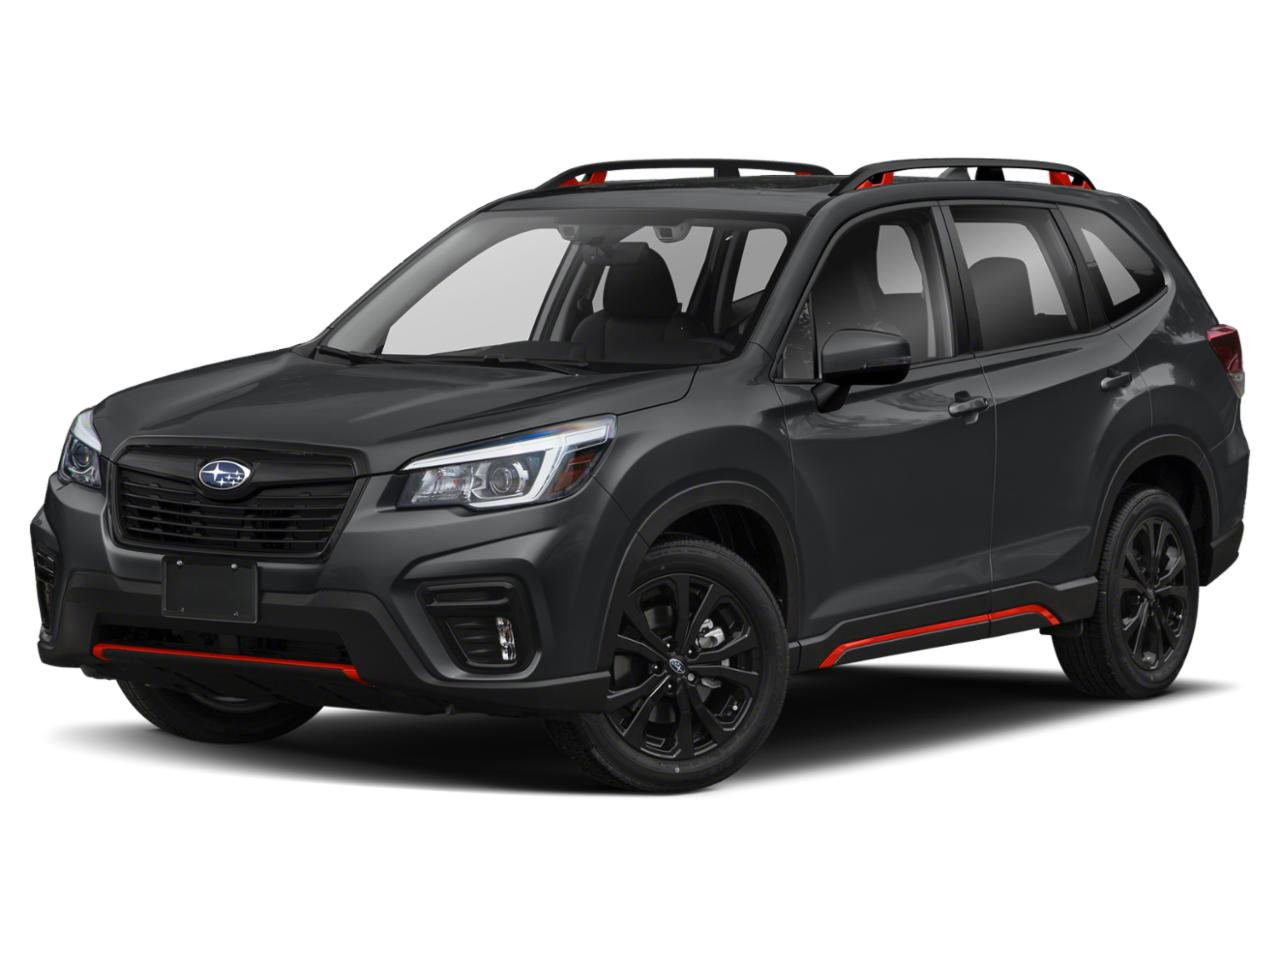 2021 Subaru Forester Vehicle Photo in Green Bay, WI 54304